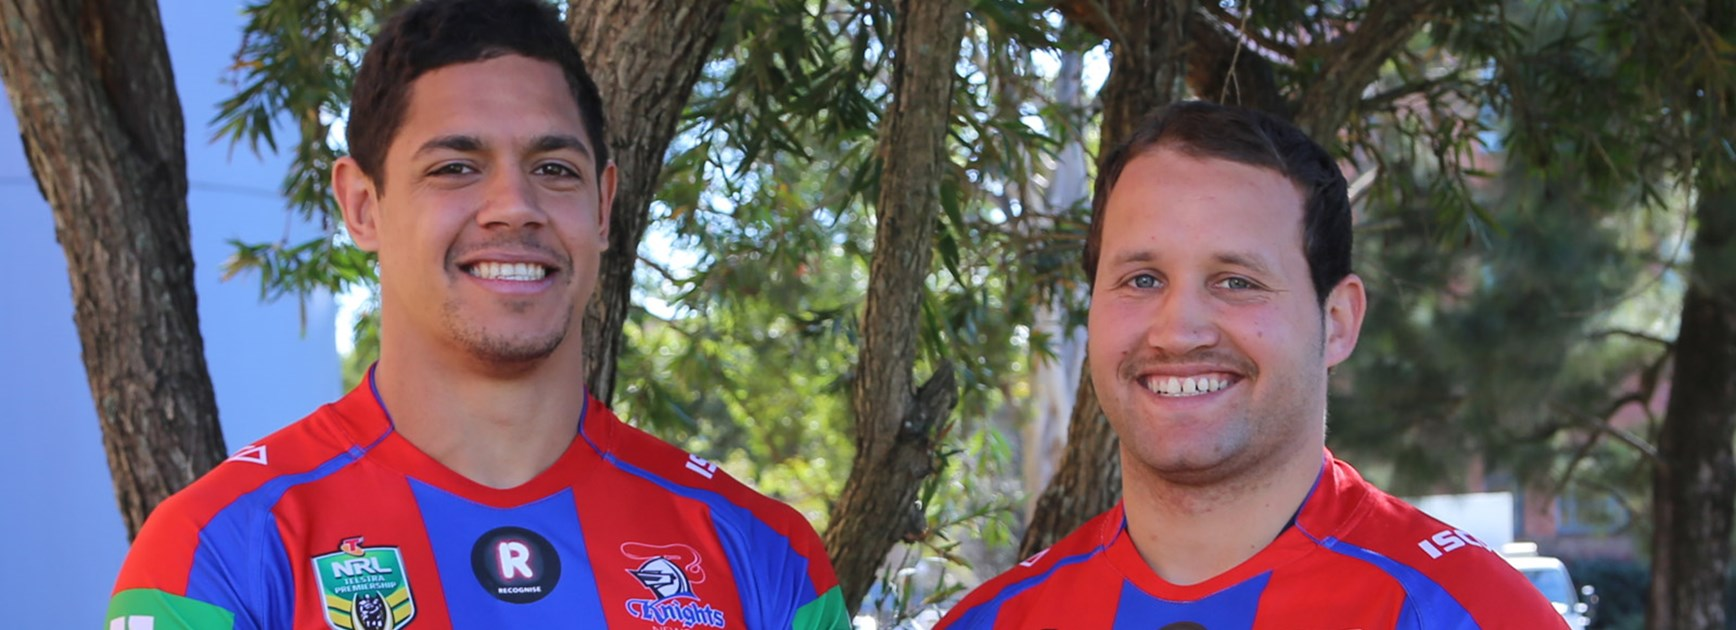 The Newcastle Knights' Round 22 jersey will feature the RECOGNISE logo in support of the campaign.